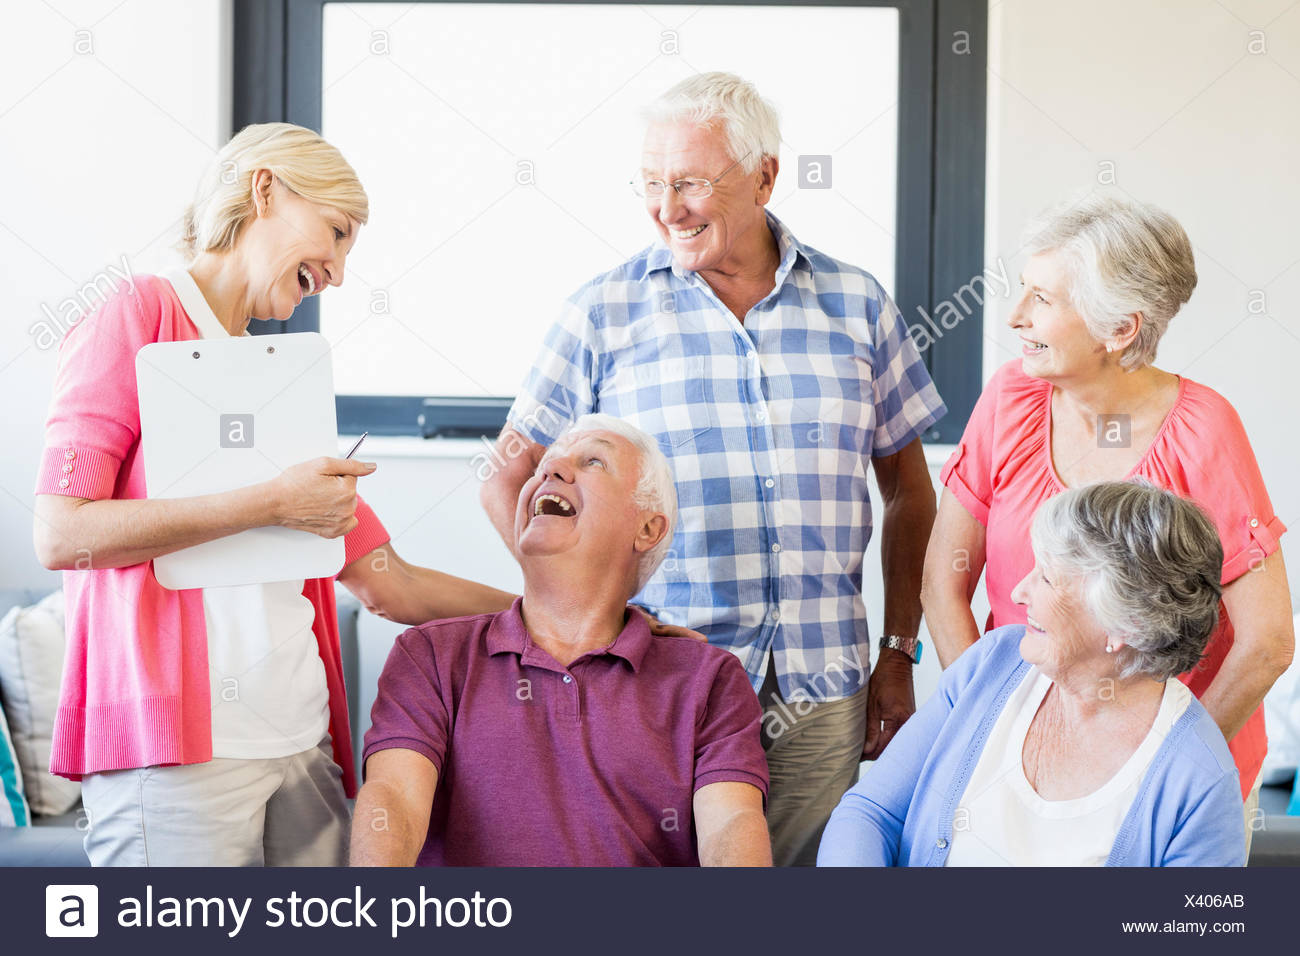 Seniors and nurse laughing together - Stock Image